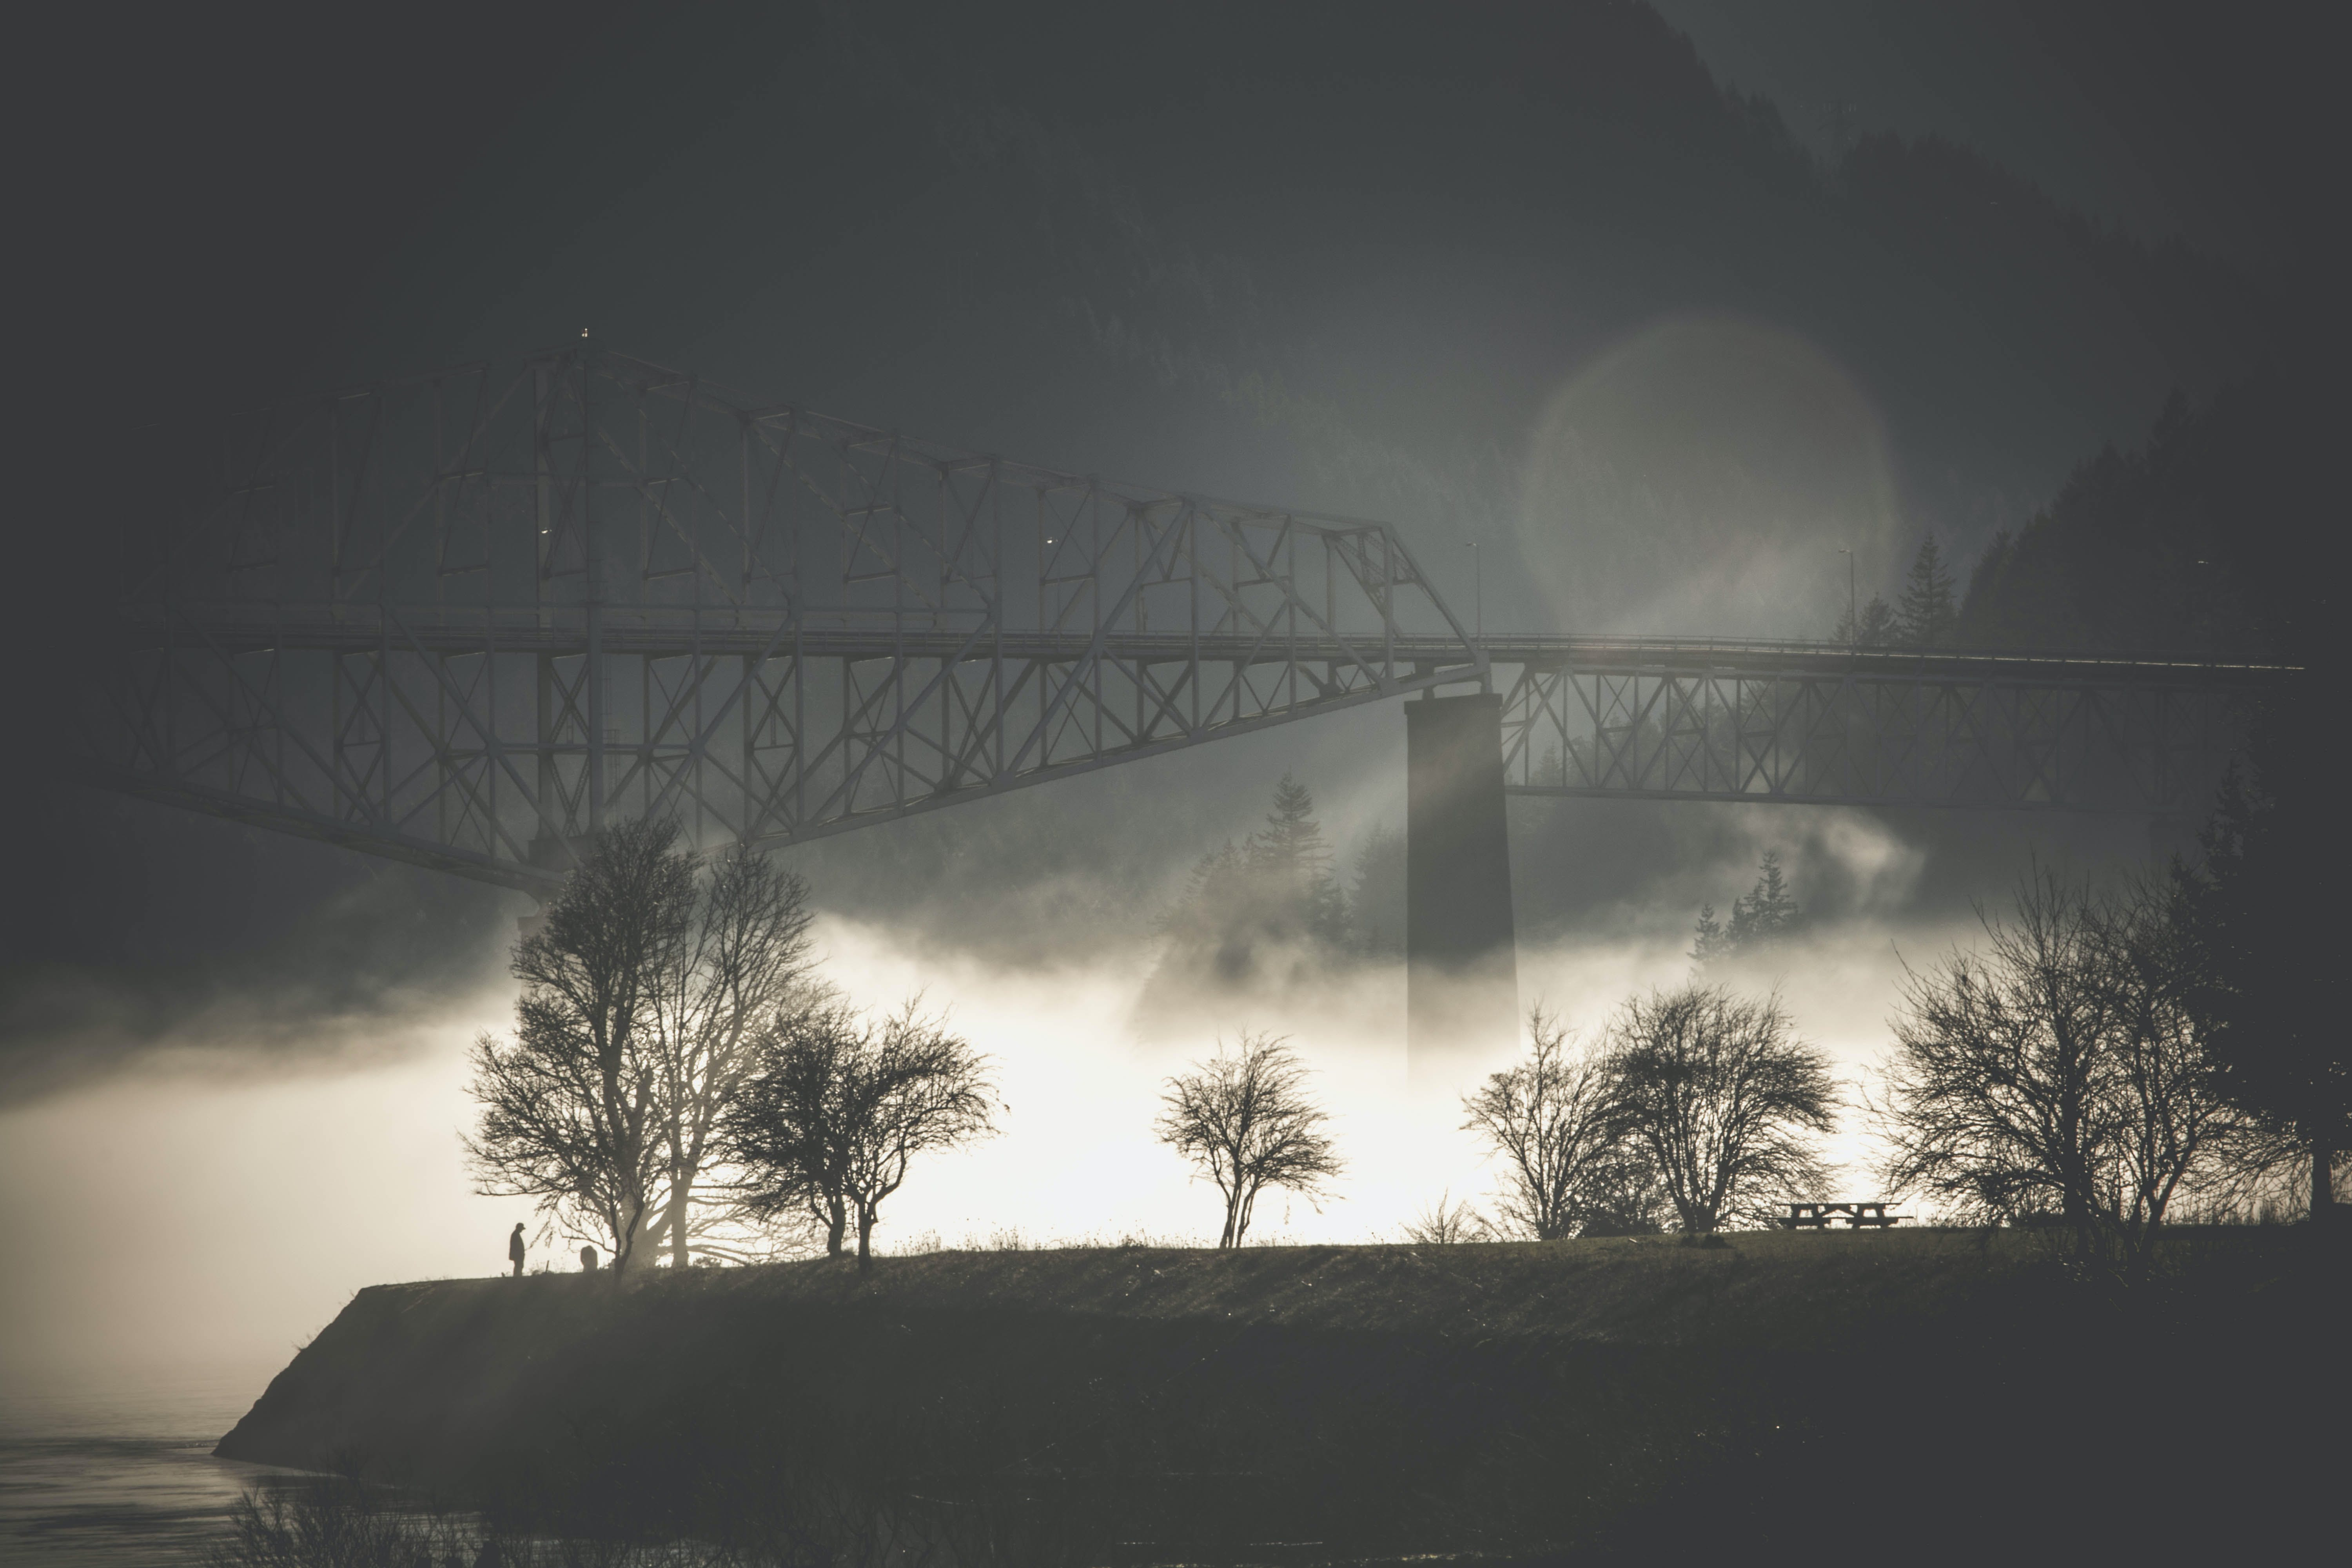 Grayscale Photography of Suspension Bridge